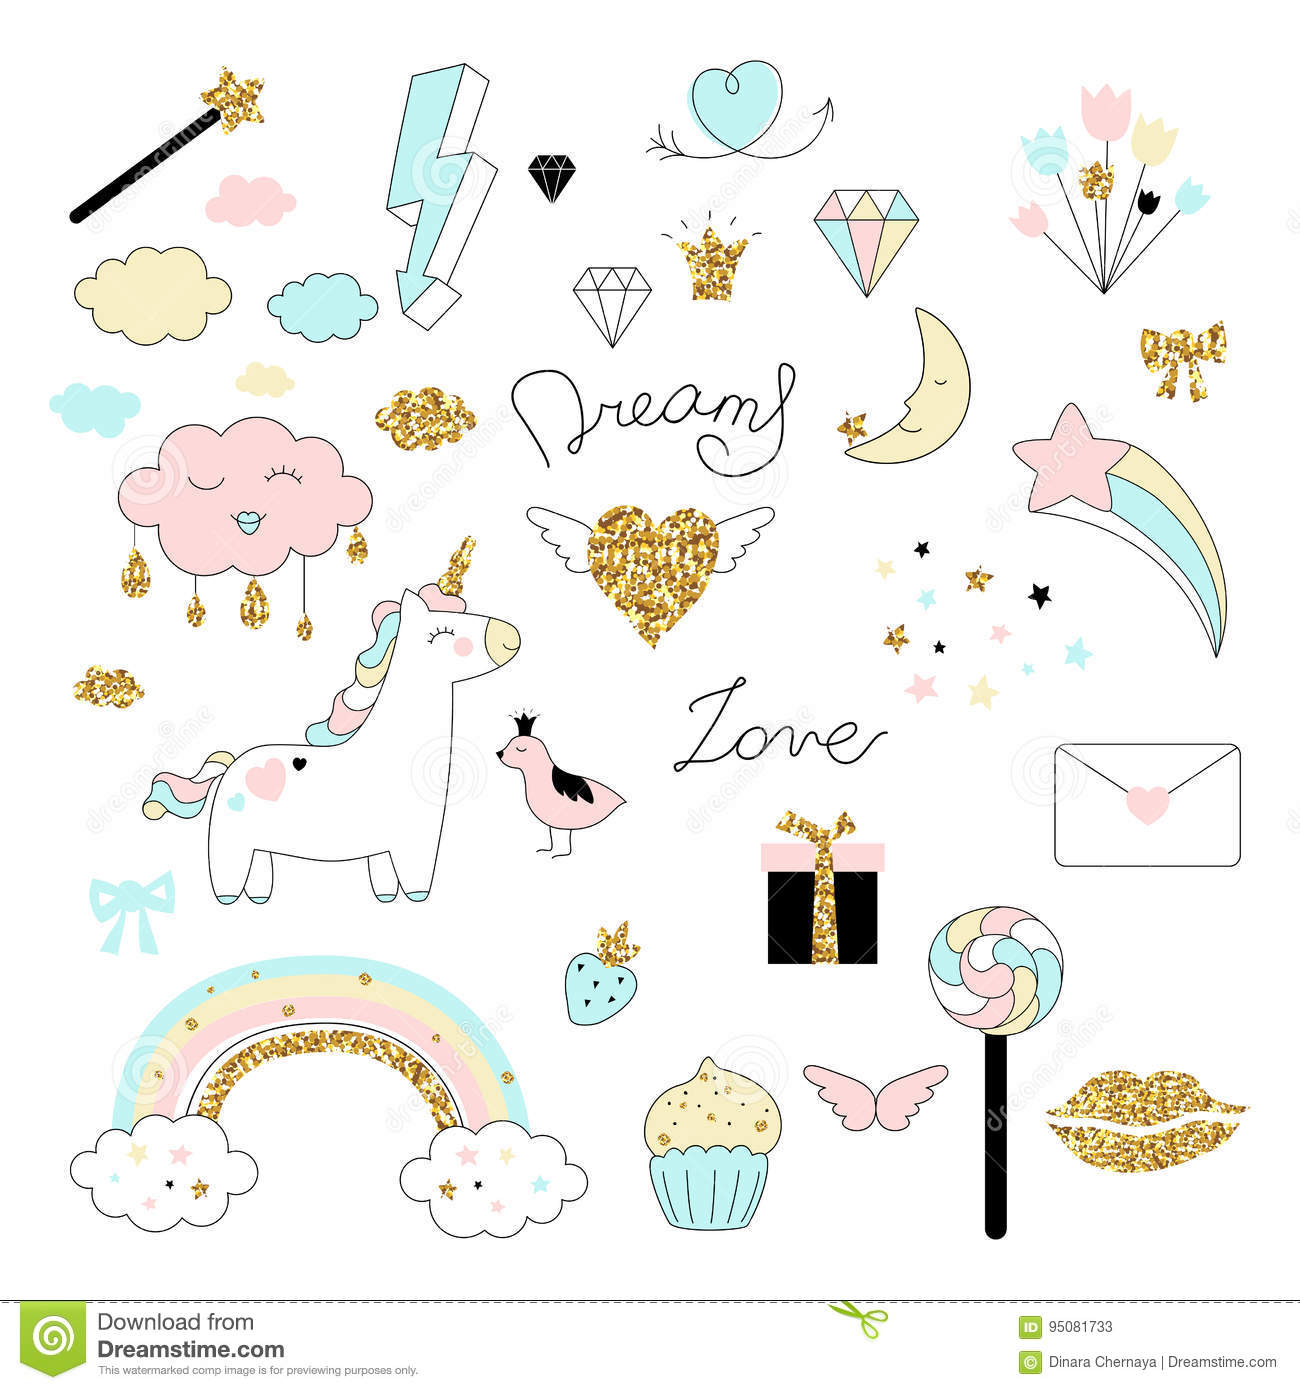 Magic design set with unicorn, rainbow, hearts, clouds and others elements.